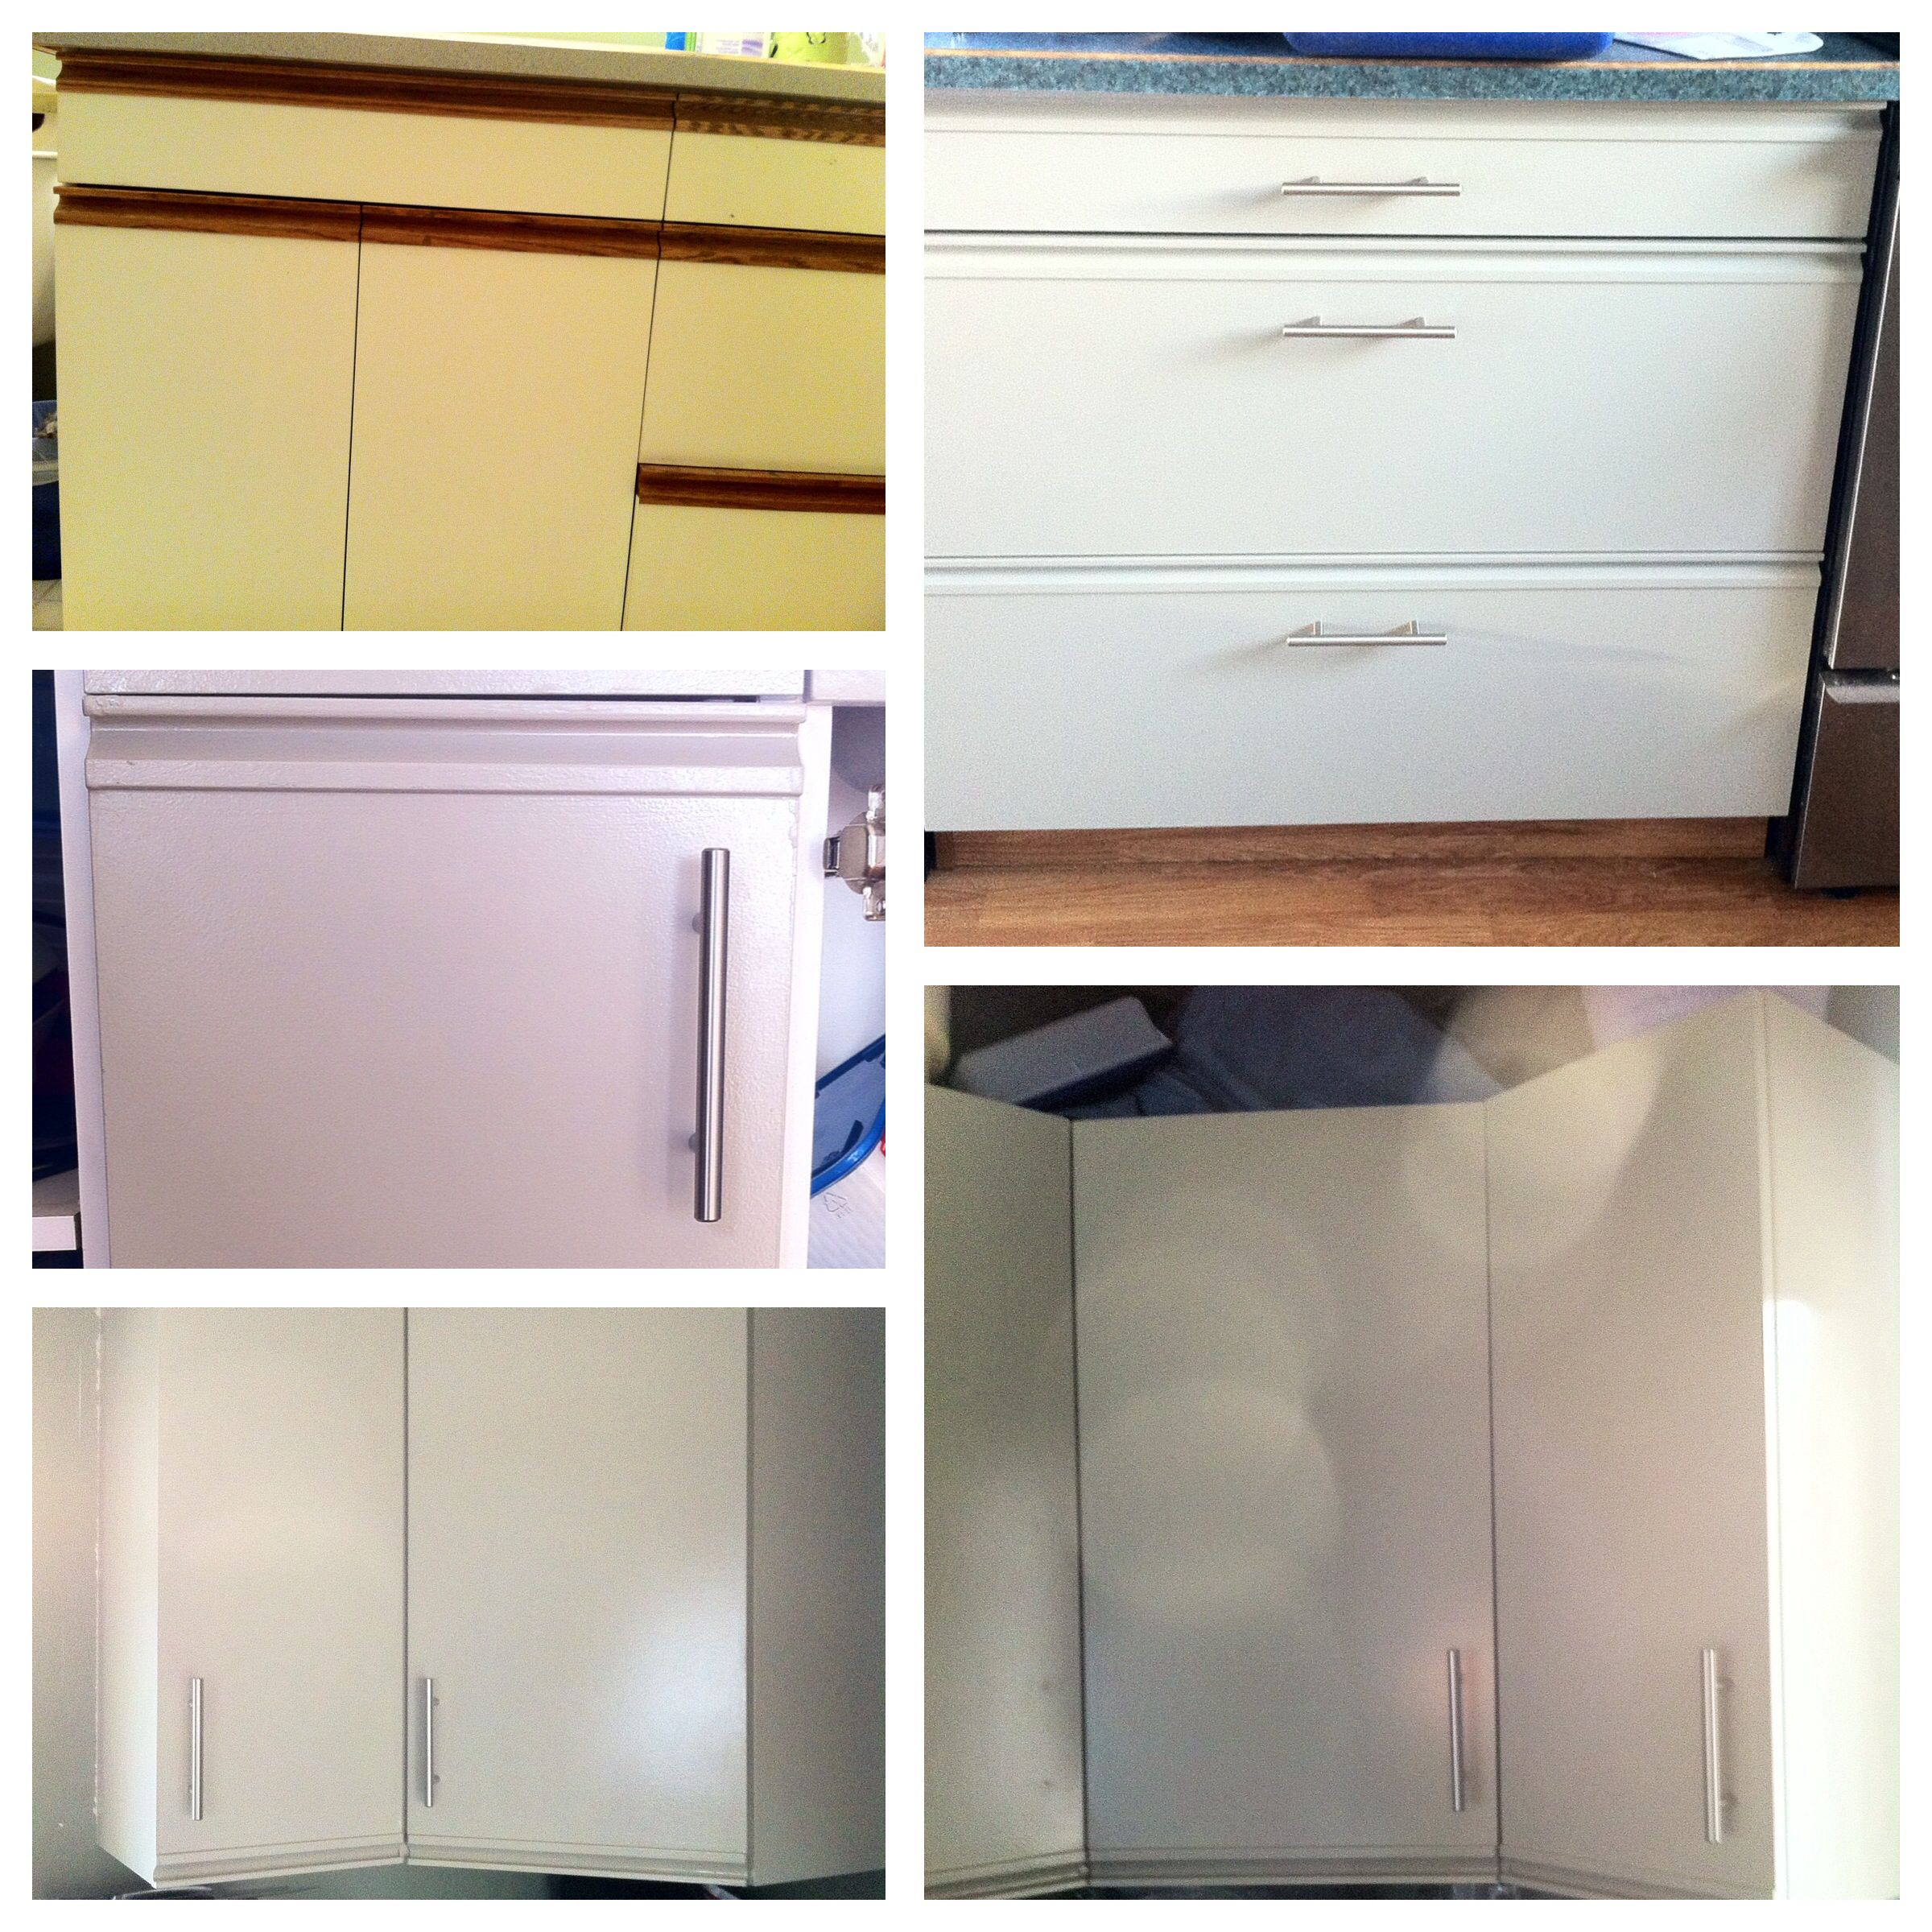 Refinishing Melamine Kitchen Cabinets: DIY Painted Cabinets. Painting Laminate/melamine Kitchen